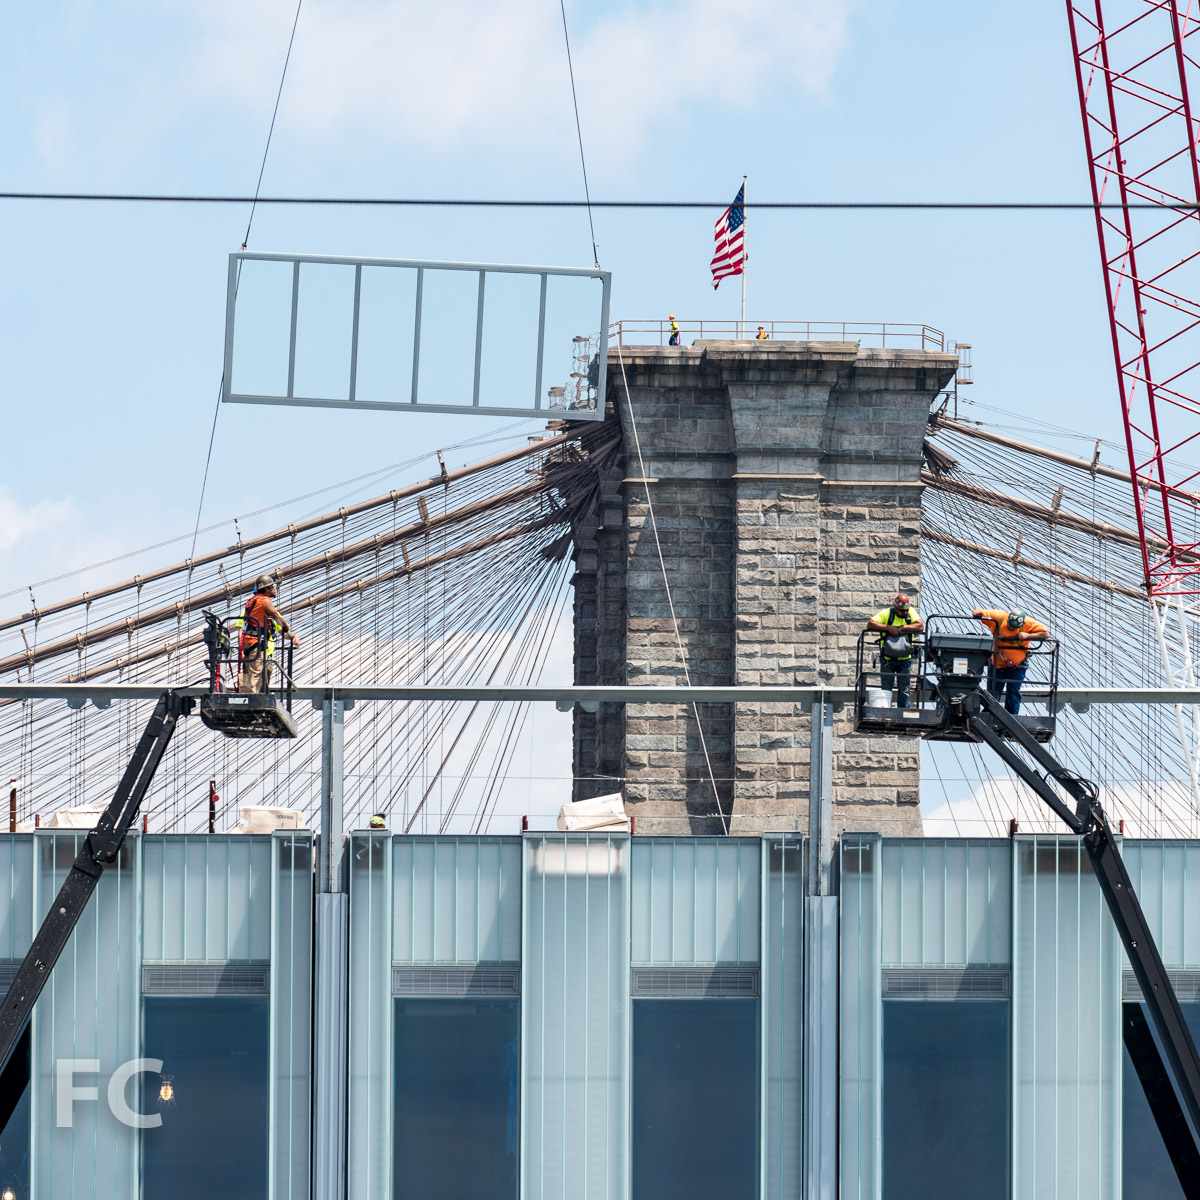 A glass wall panel being hoisted into place.